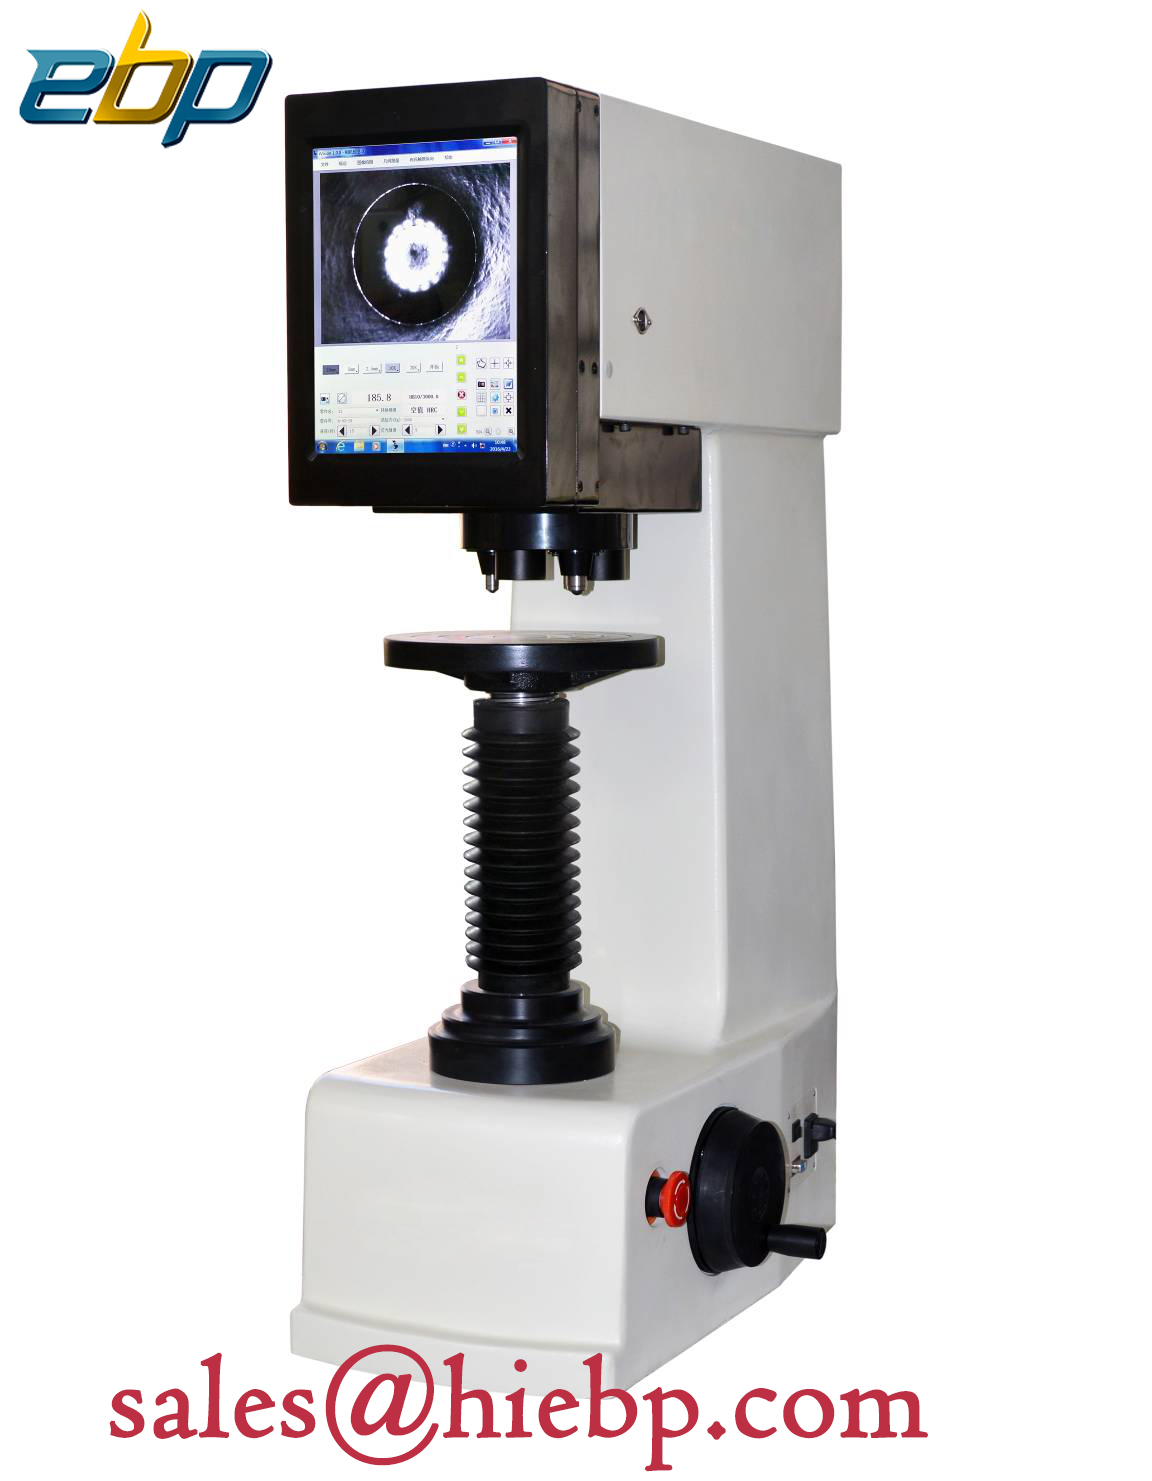 EBP Fully Automatic Three Indenters Touch Screen Digital Brinell hardness tester B-3000AT